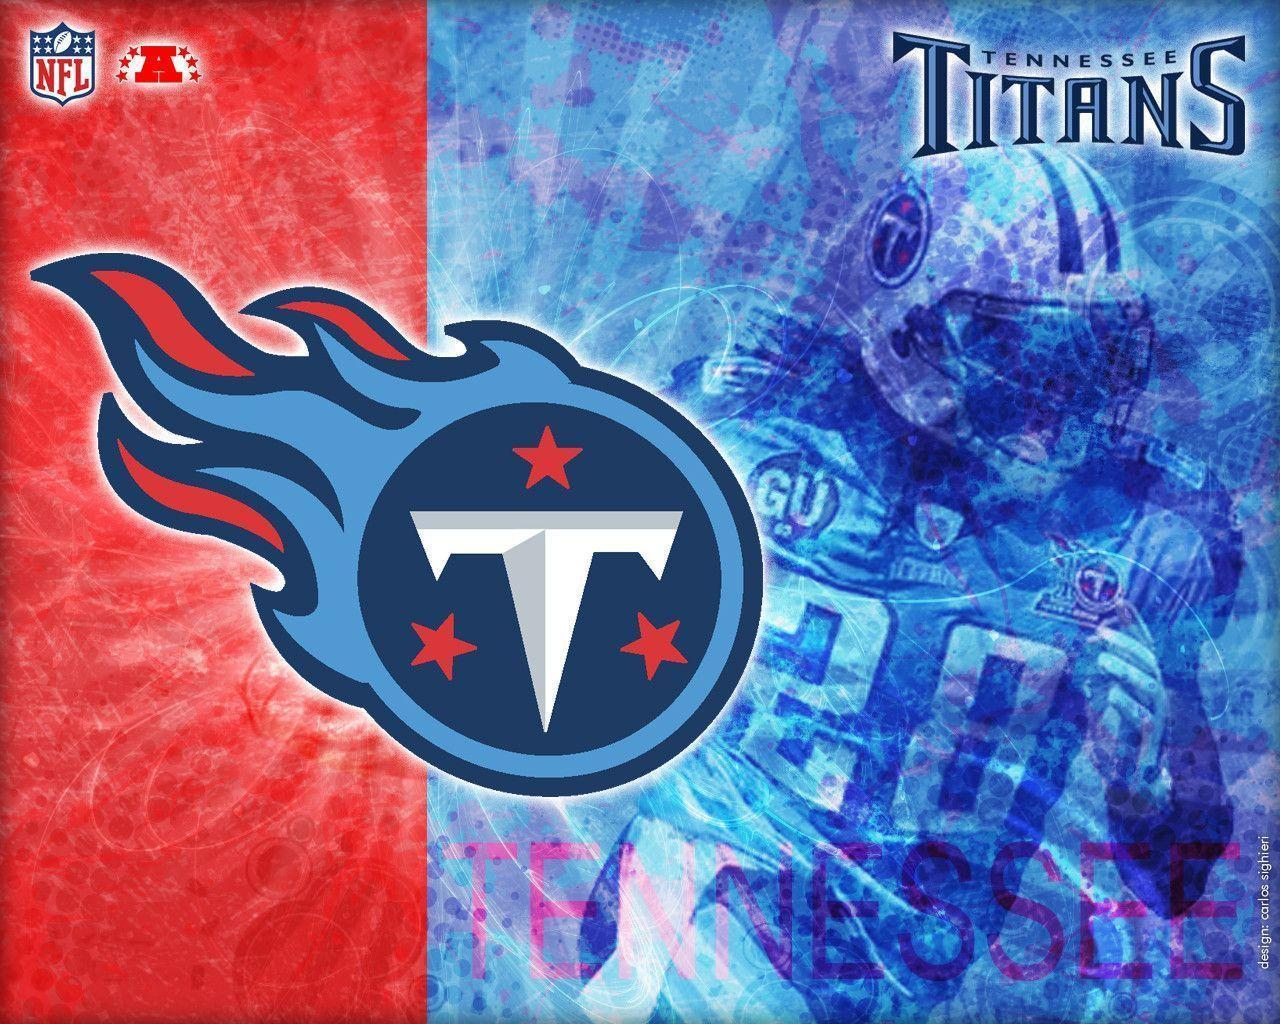 Tennessee Titans Graphic Design Wallpapers